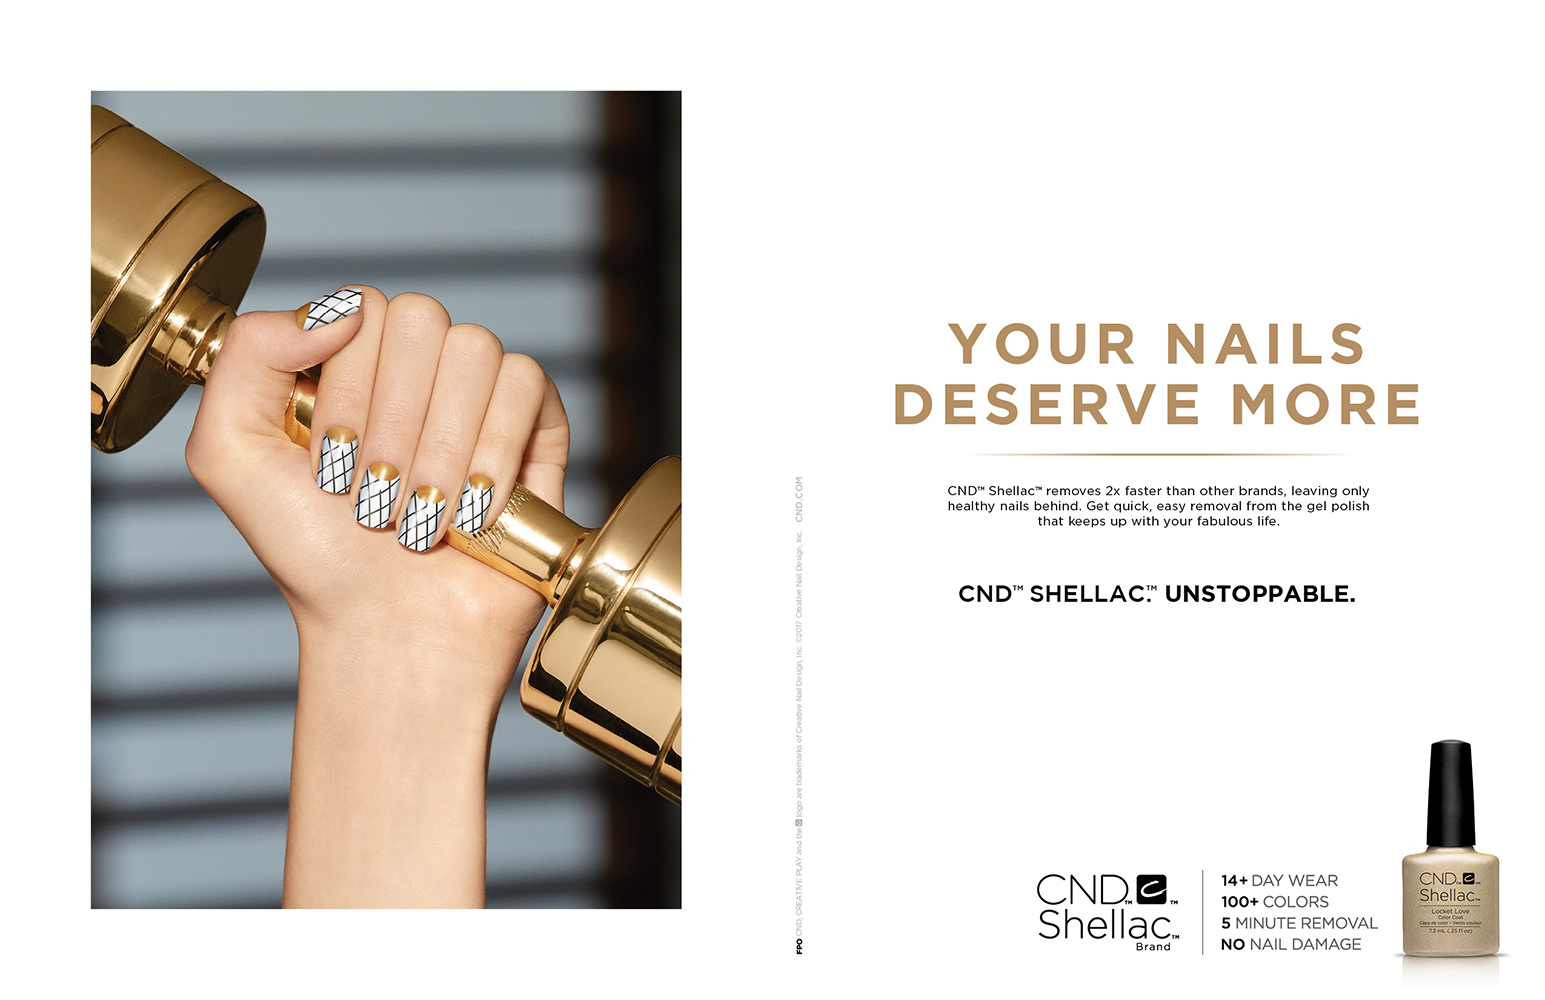 CND_Shellac_Double_Spread_Print_WEIGHTS(low_res).jpg